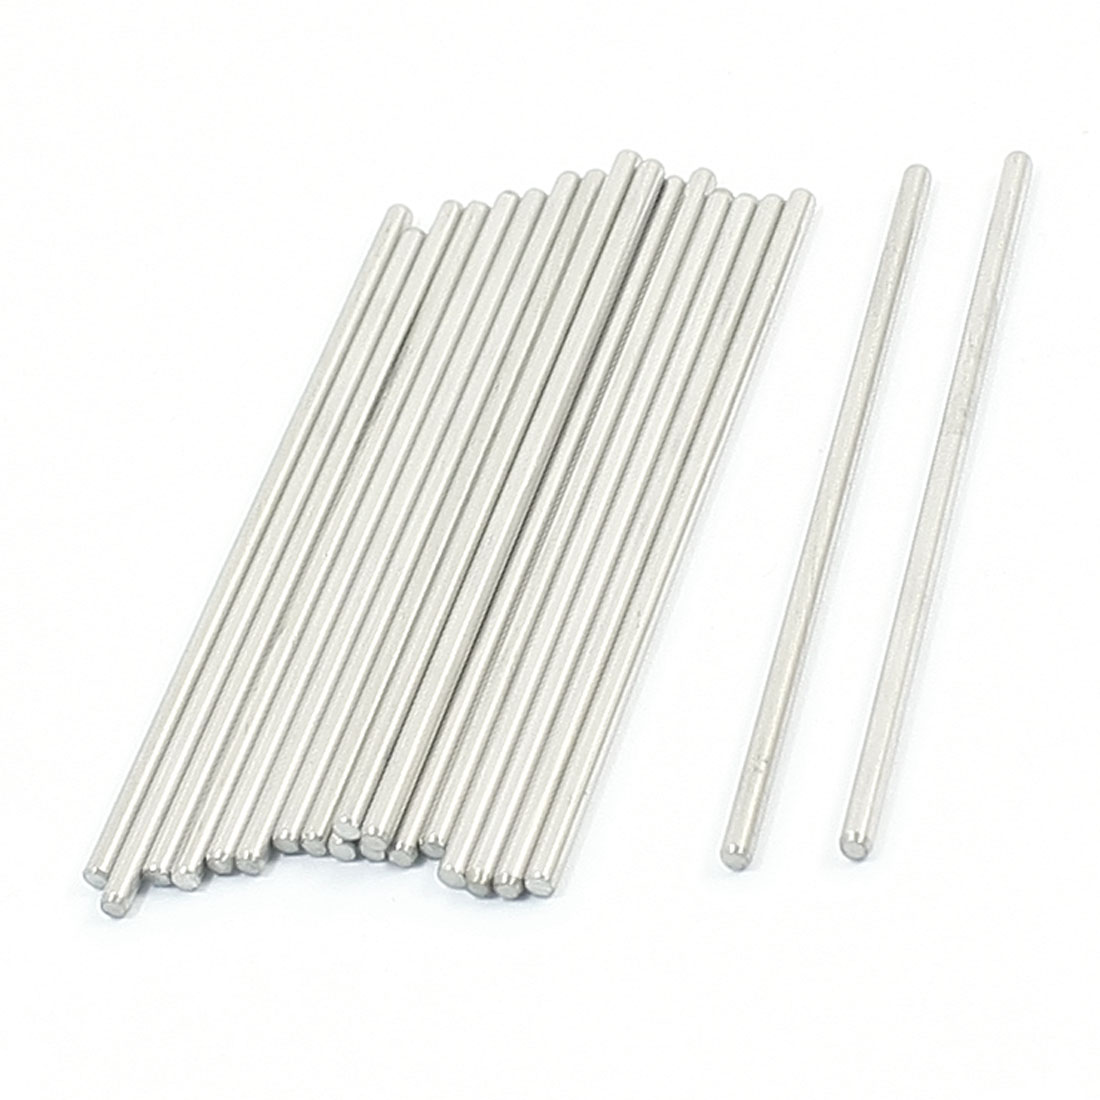 20PCS 60mm x 2mm Stainless Steel Round Rod Axle Bars for RC Toys